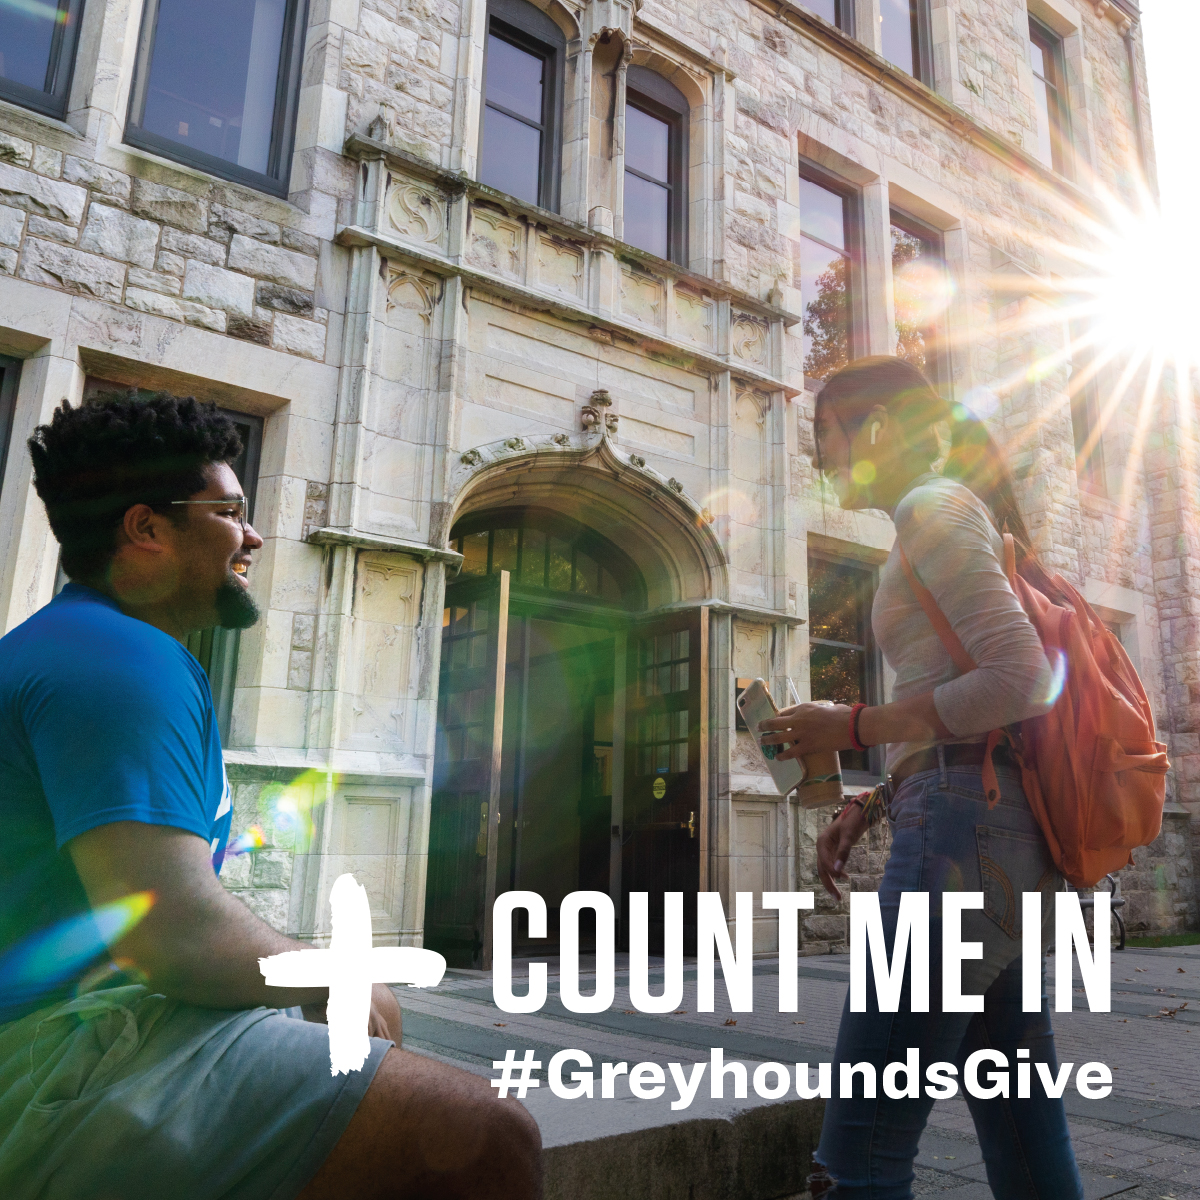 Greyhounds Give sharing image - students outside of Jenkins Hall